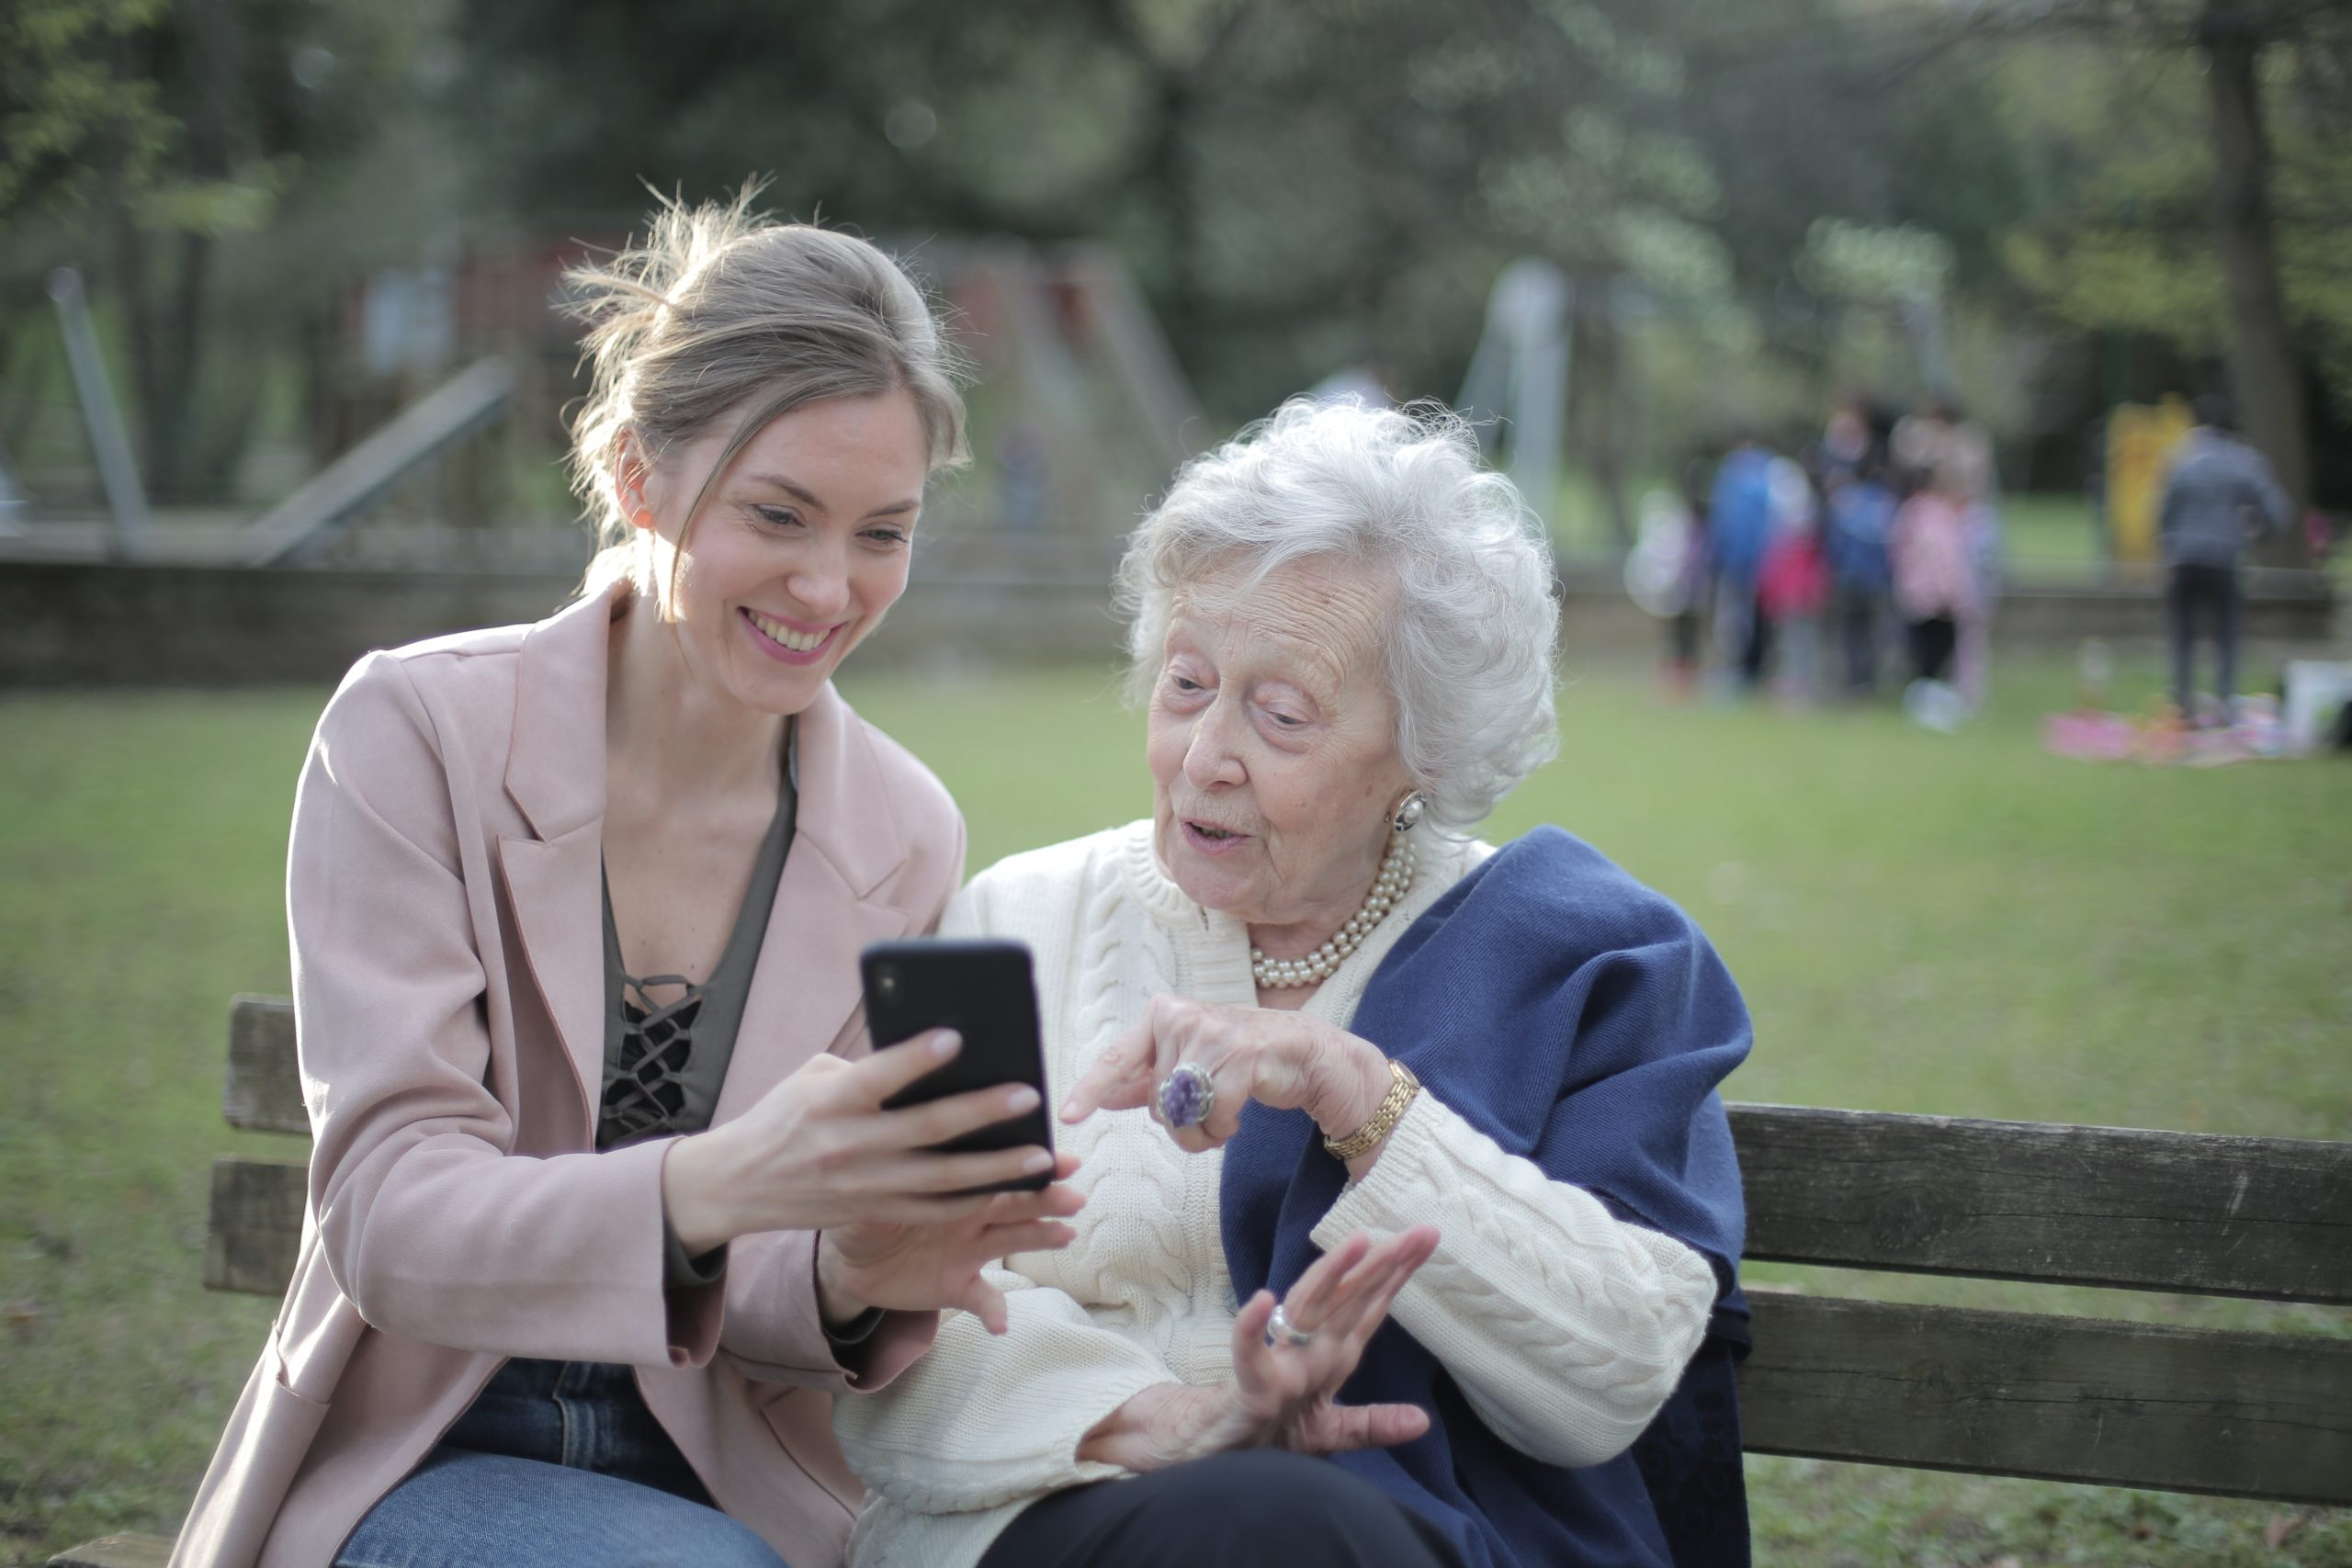 Young woman with her grandmother on a bench